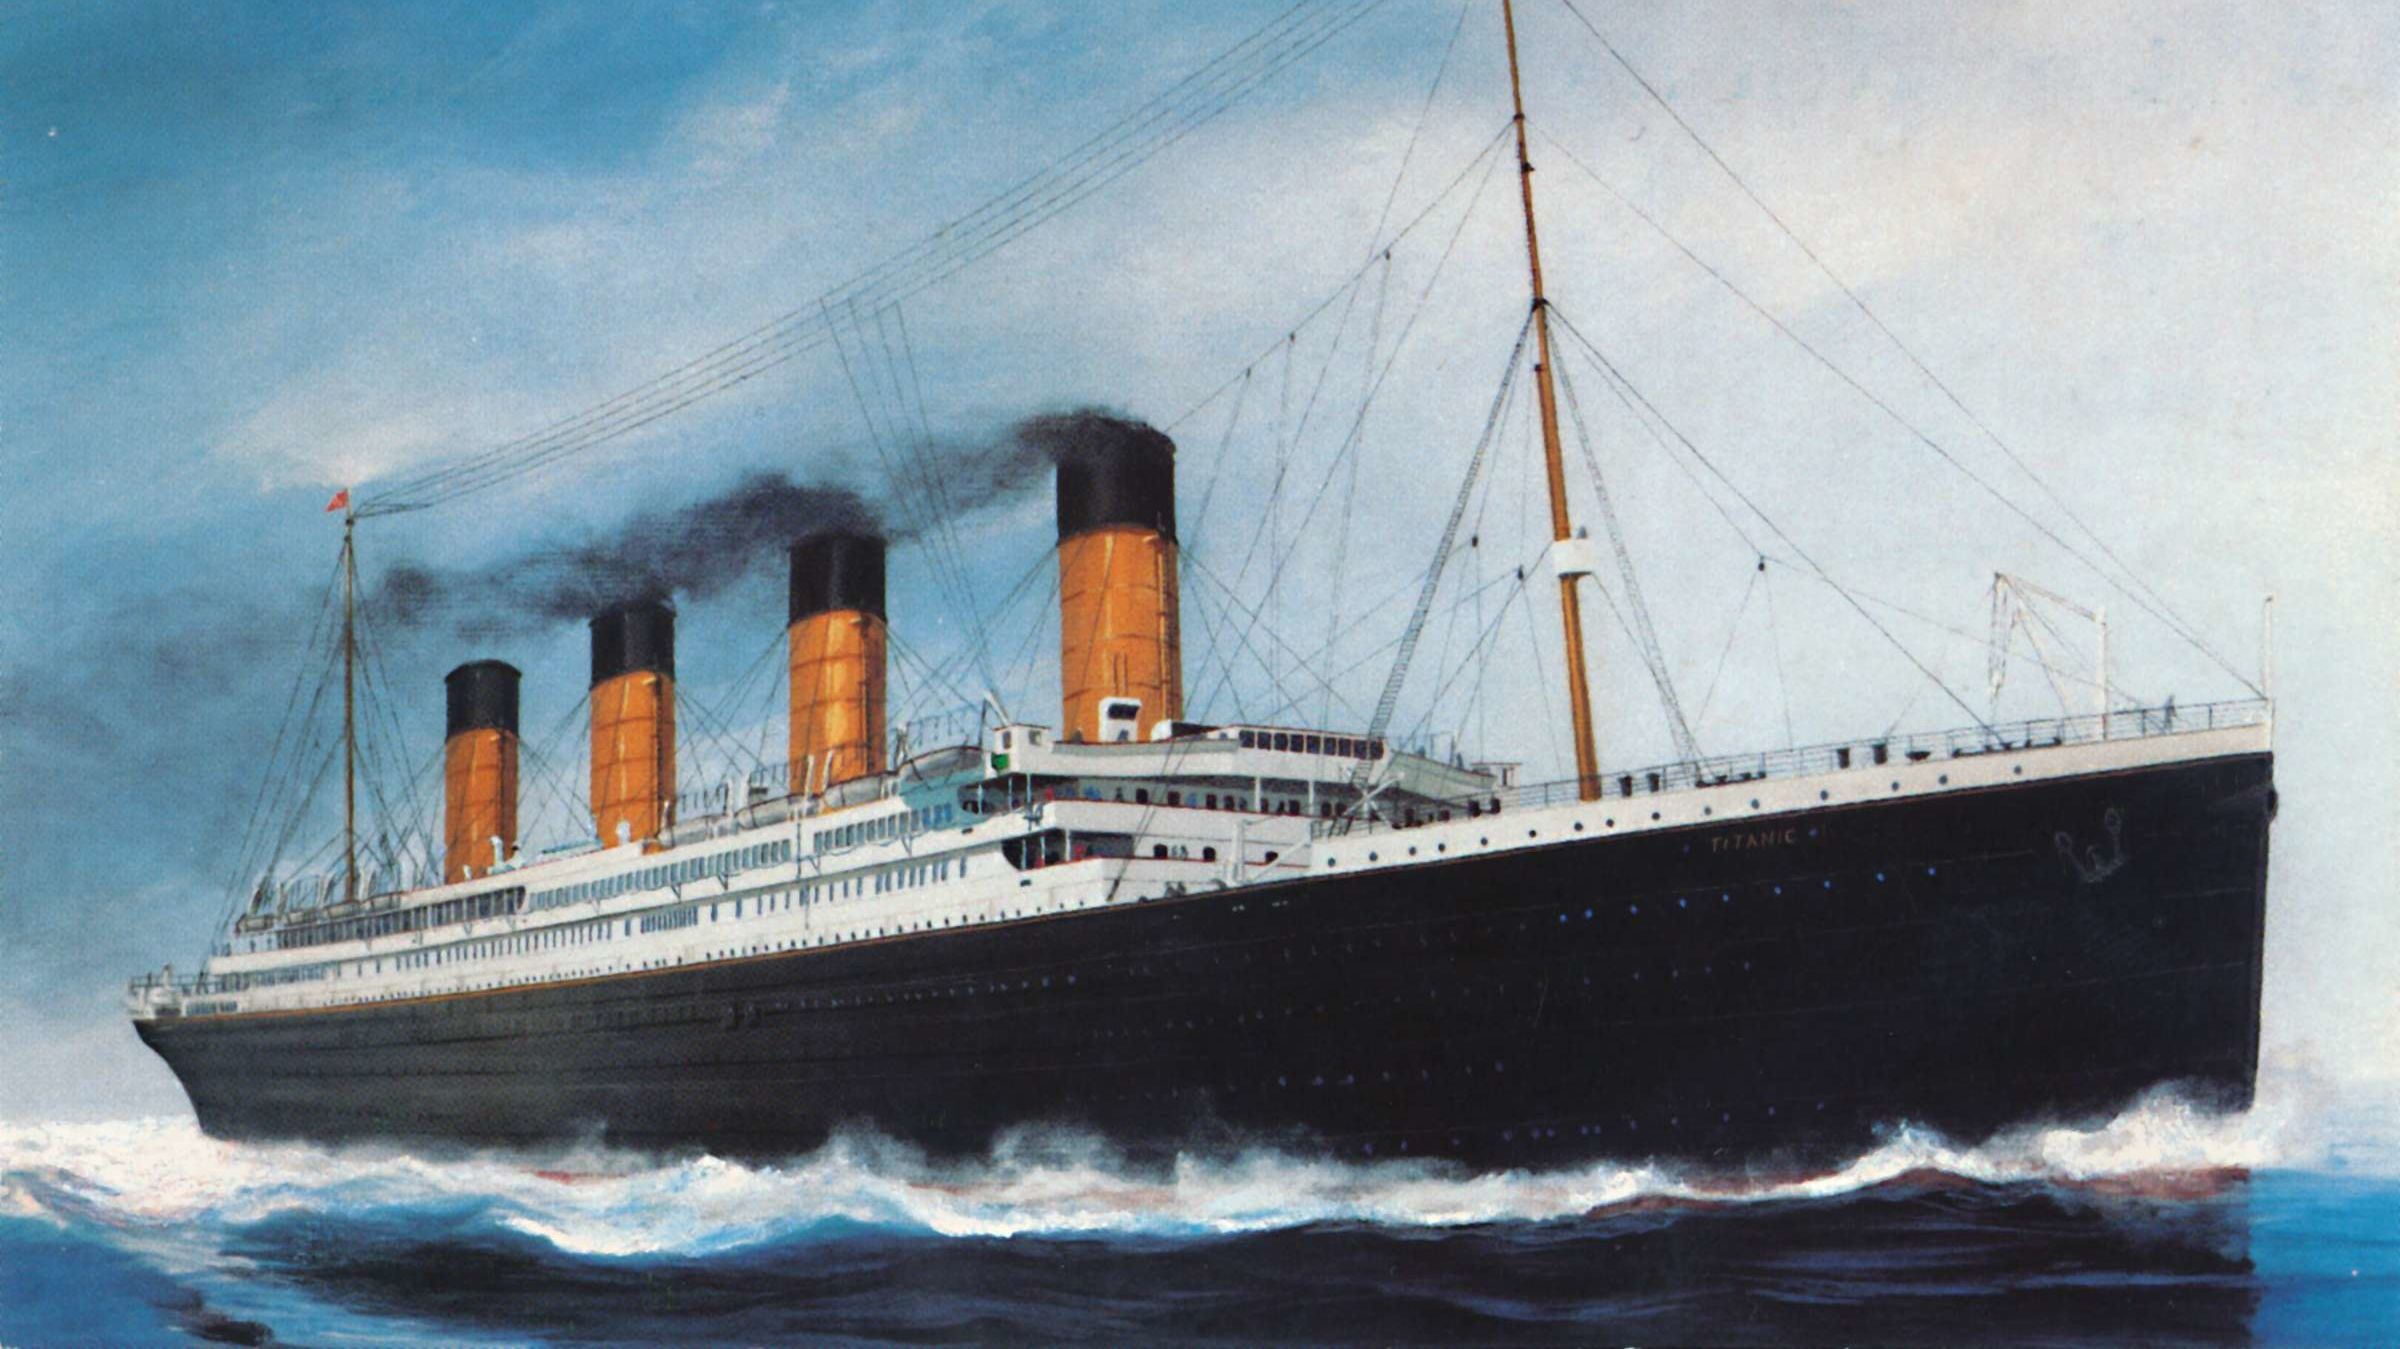 11 Questionable Suggestions for Raising the Titanic